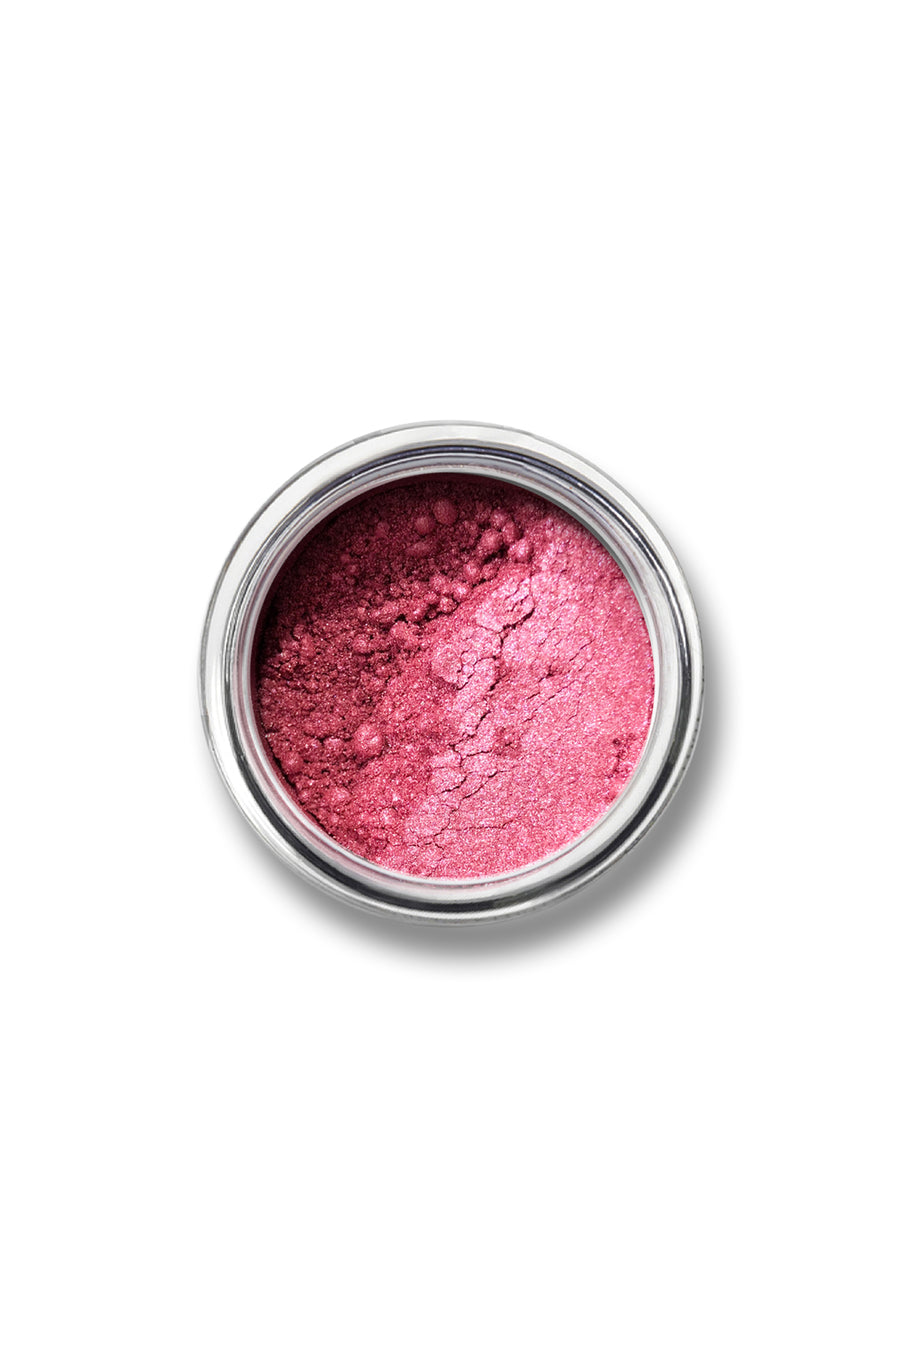 Shimmer Eyeshadow #15 - Rose Pink - Blend Mineral Cosmetics